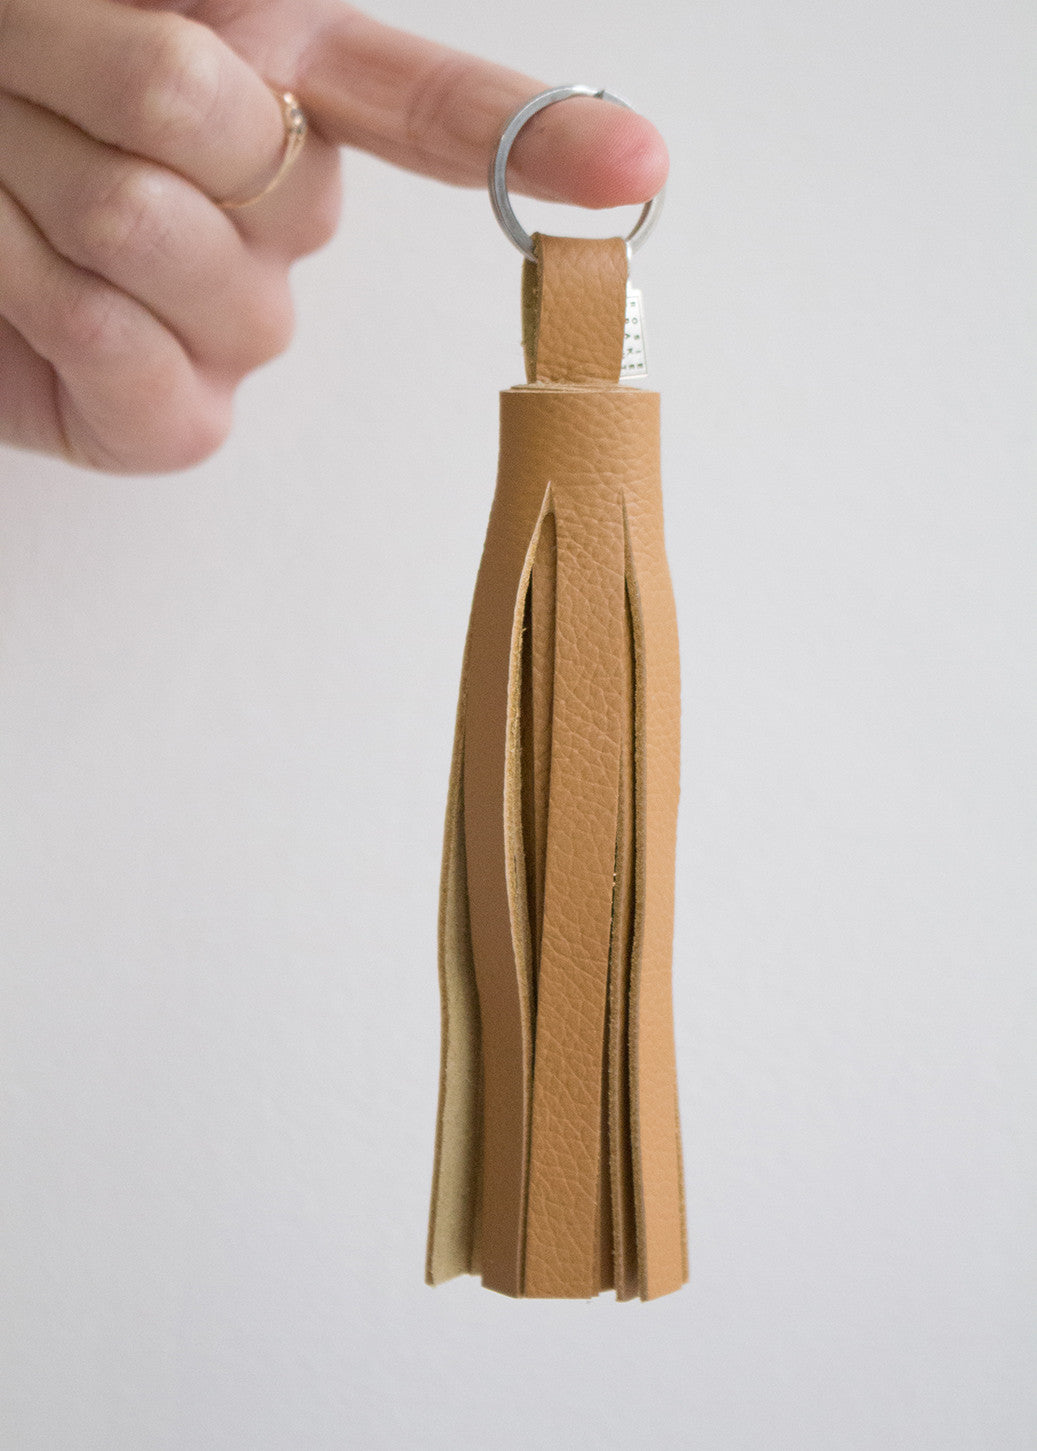 Ochre Tassell Keyring-Keychain-Sancho's Dress